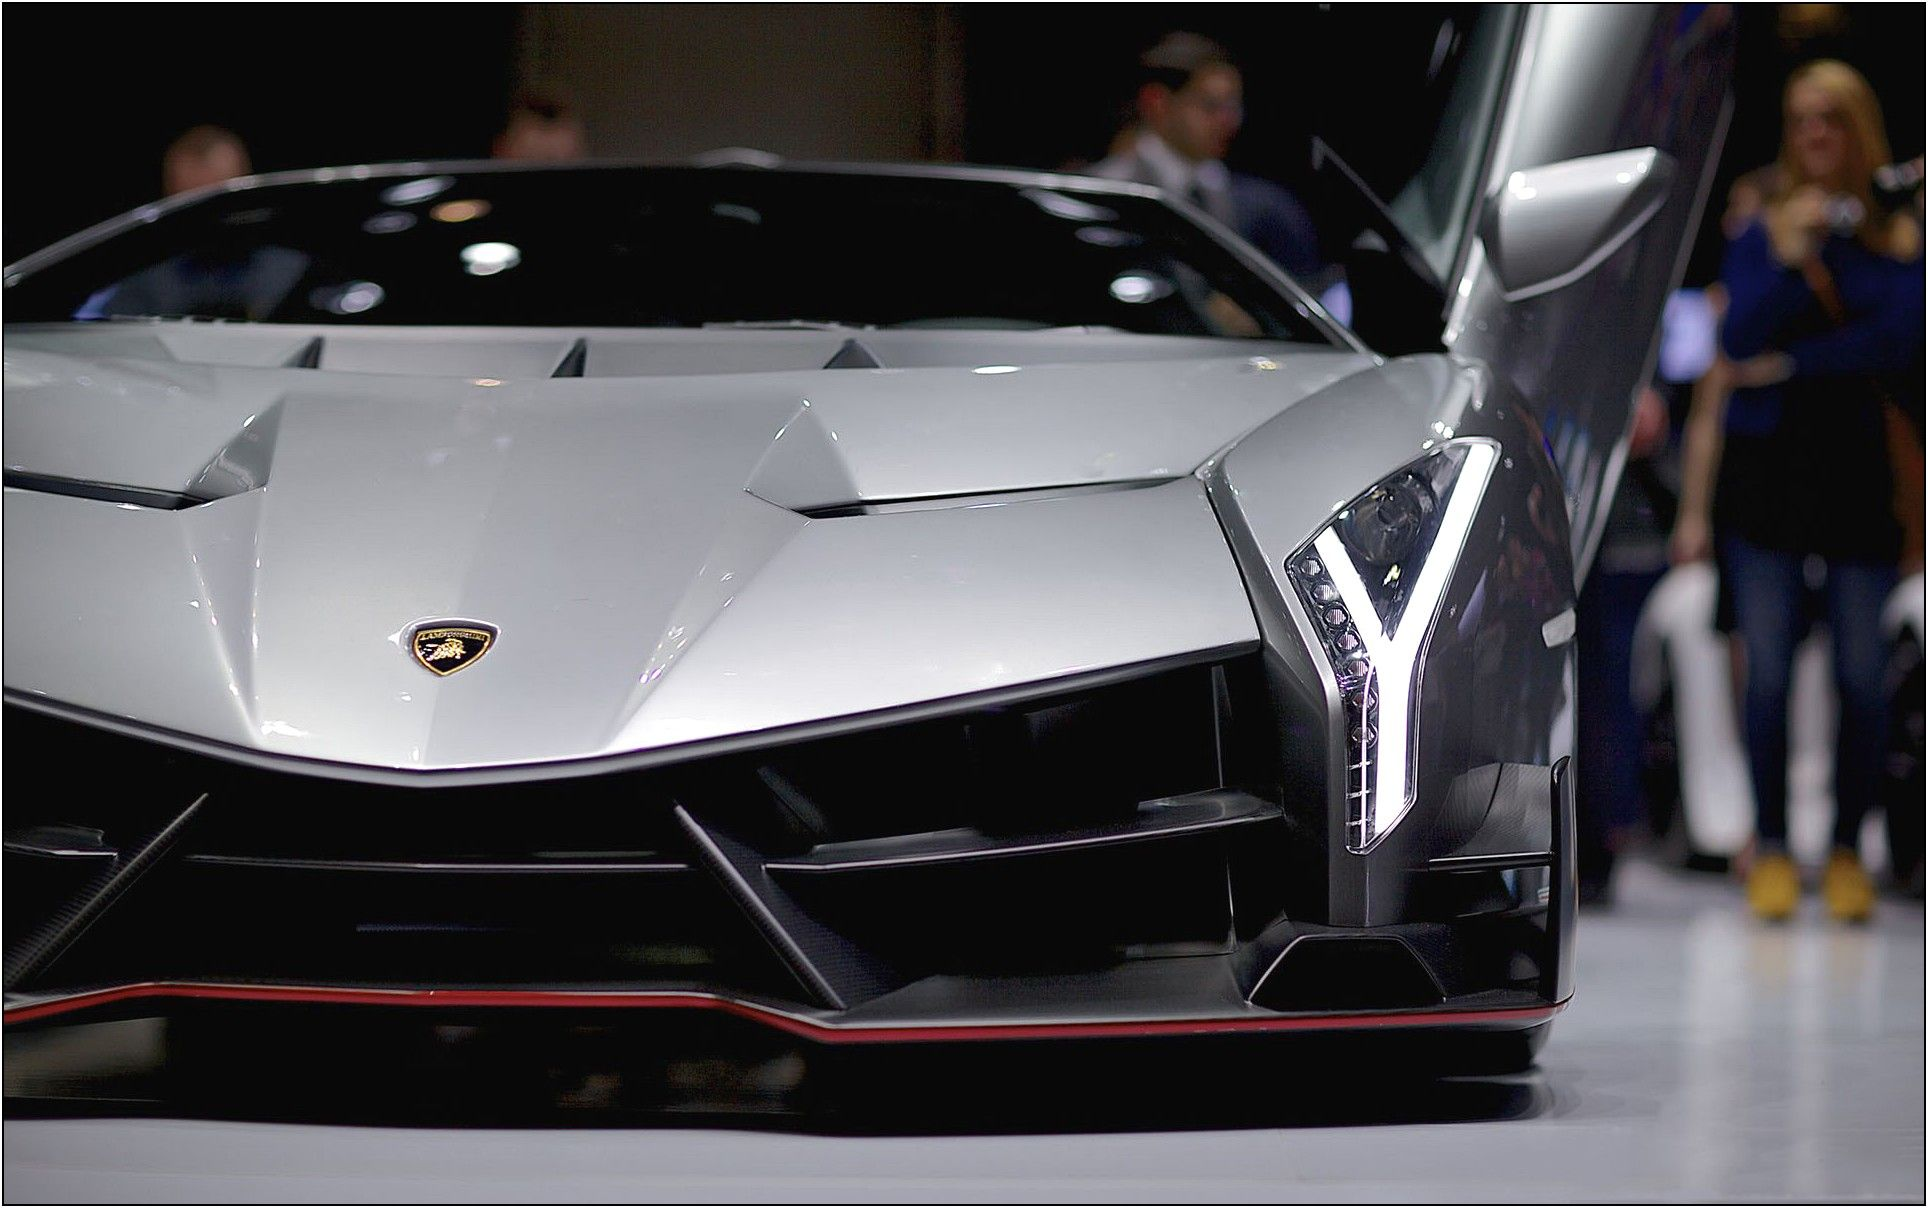 Lamborghini Have Just Released Their Latest And Greatest Creation, The  Veneno. It Is Ultra Sleek And Of Course Ridiculously Speedy.